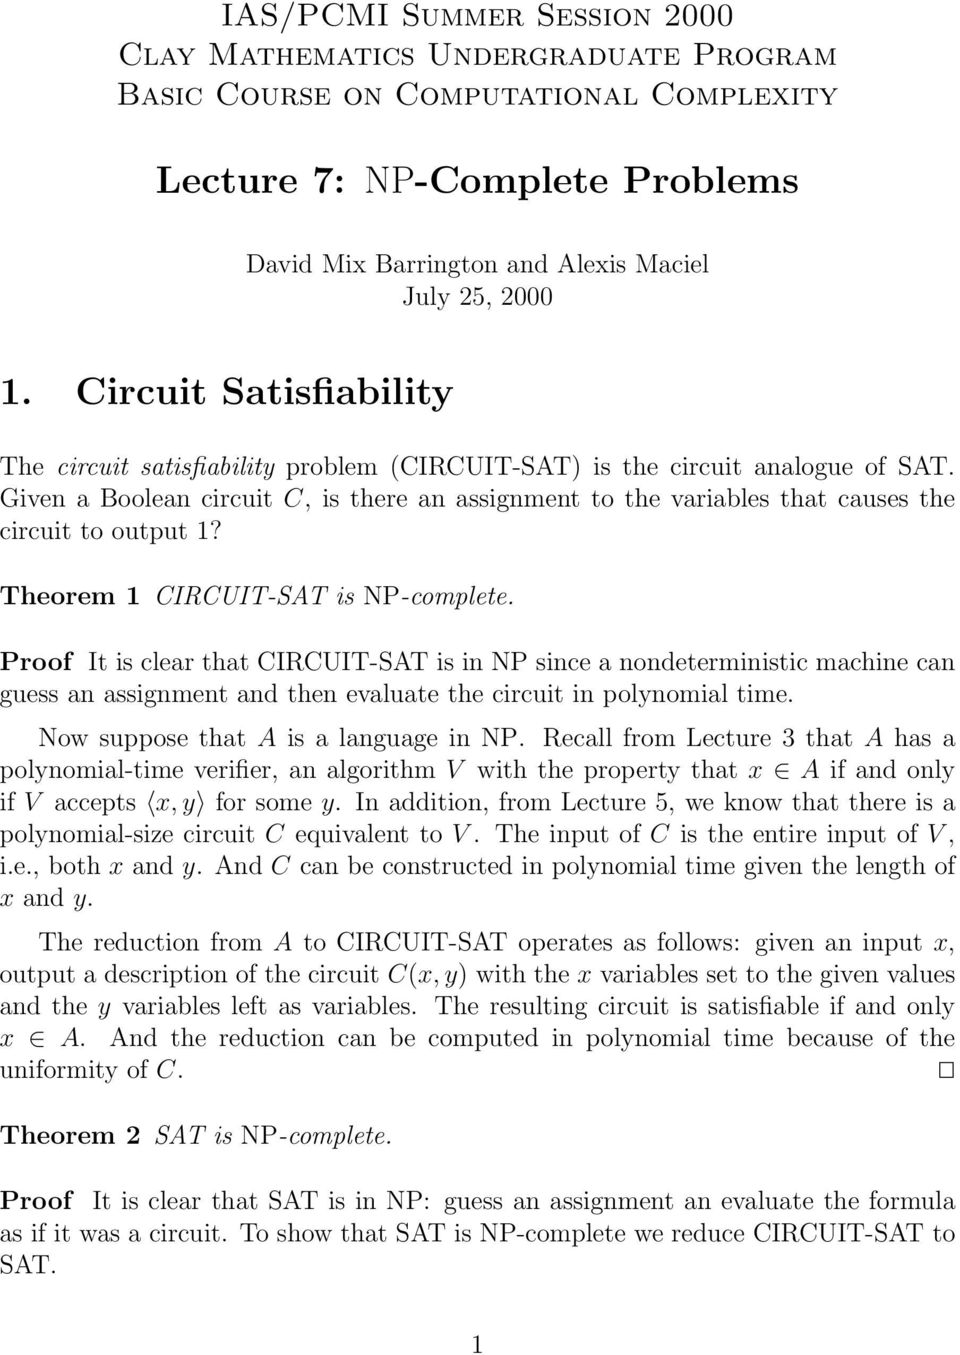 Given a Boolean circuit C, is there an assignment to the variables that causes the circuit to output 1? Theorem 1 CIRCUIT-SAT is NP-complete.